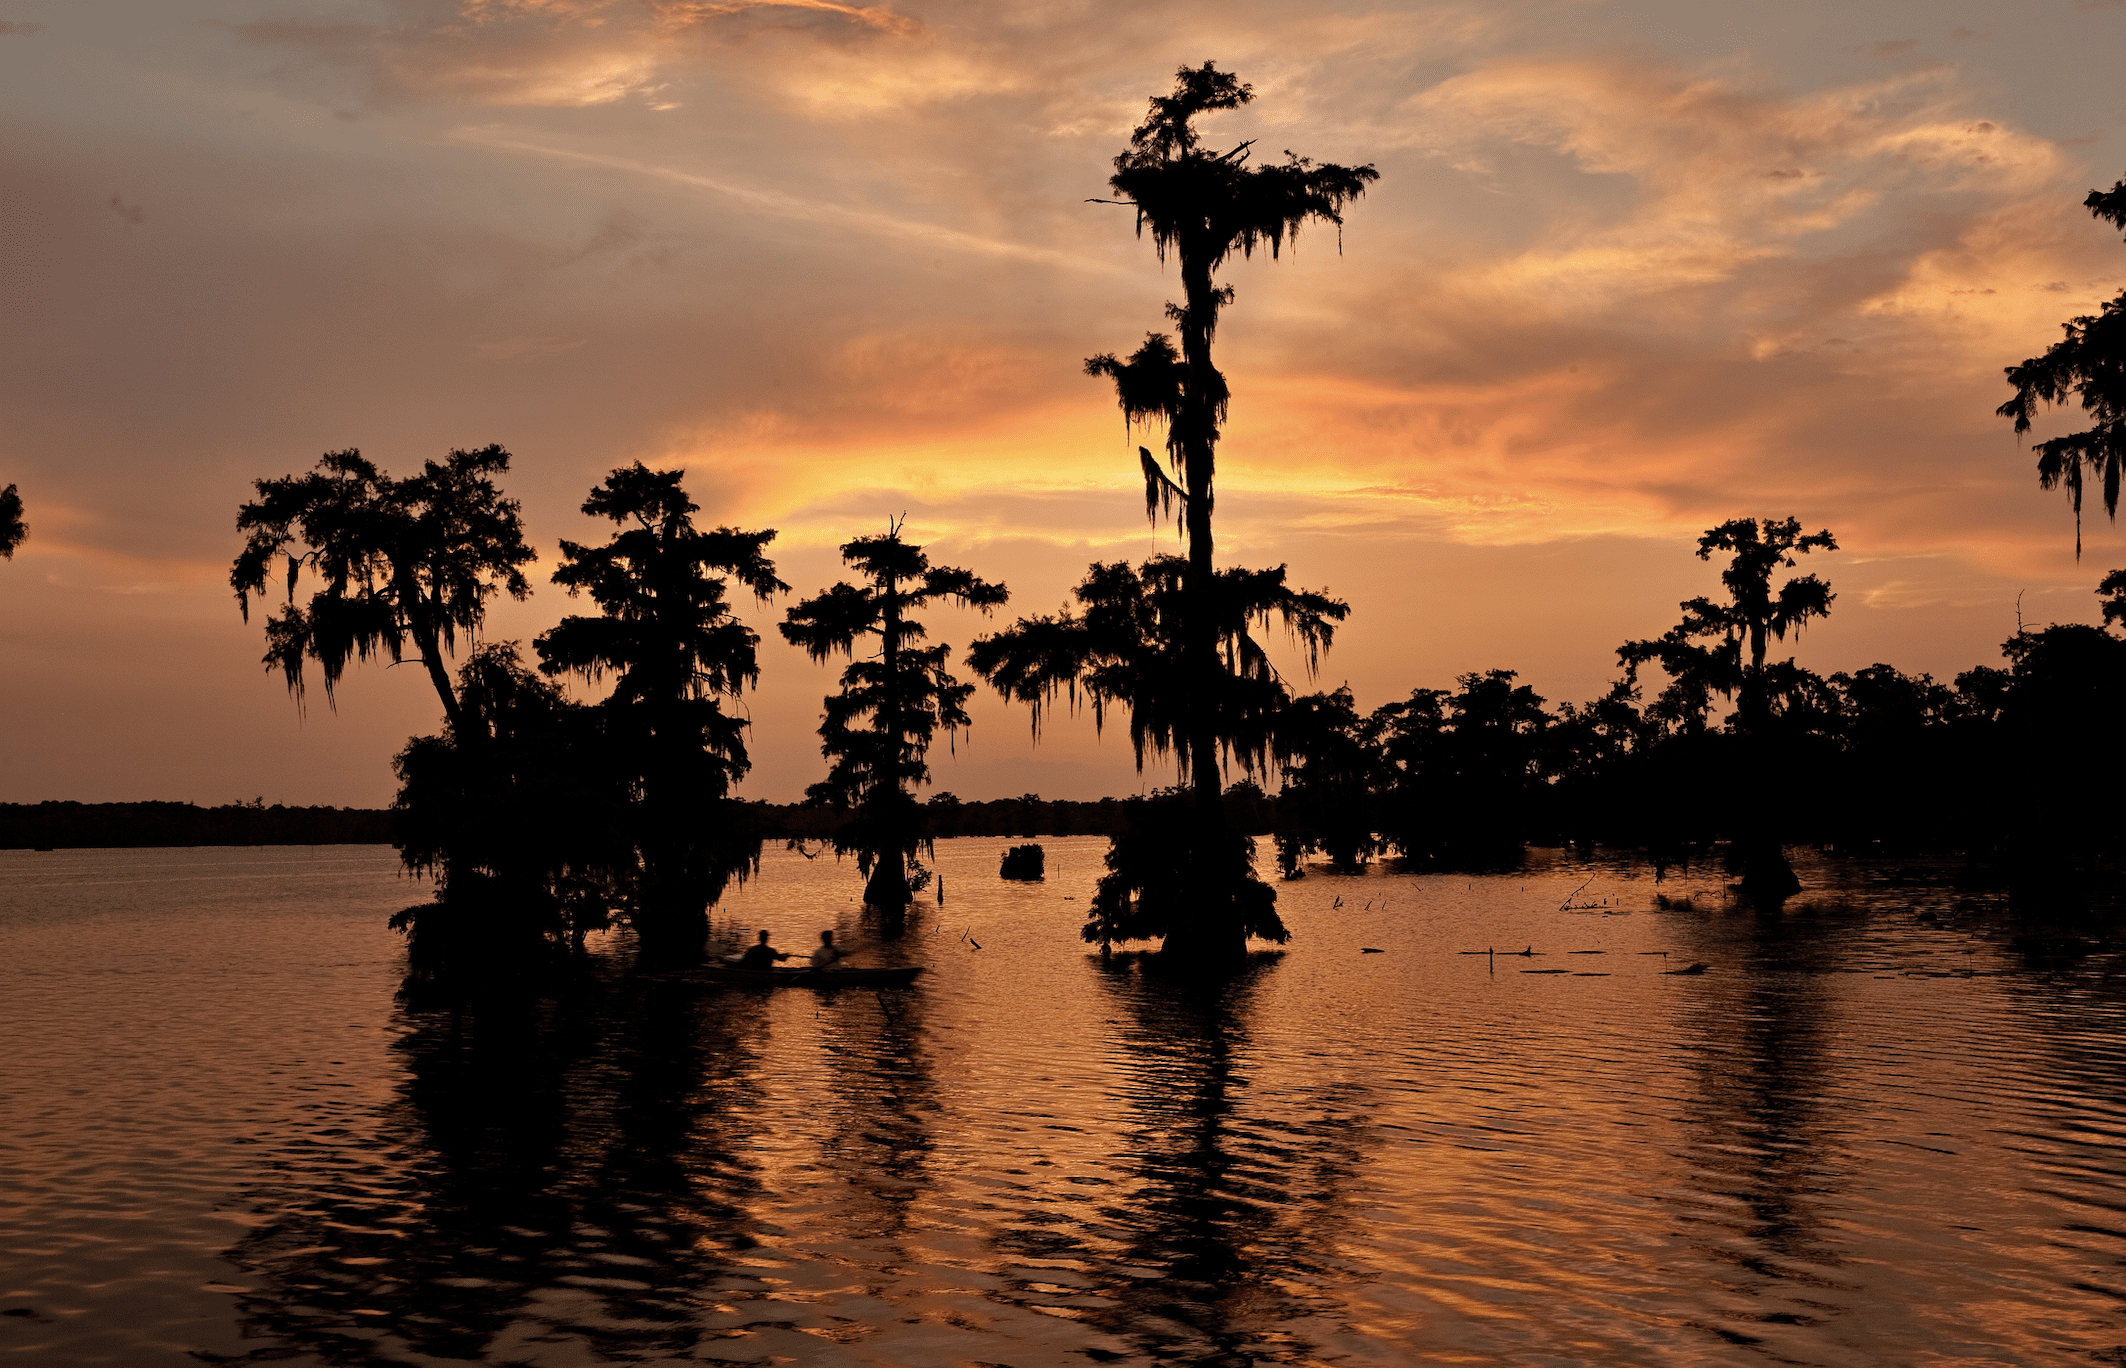 sunset over the bayou